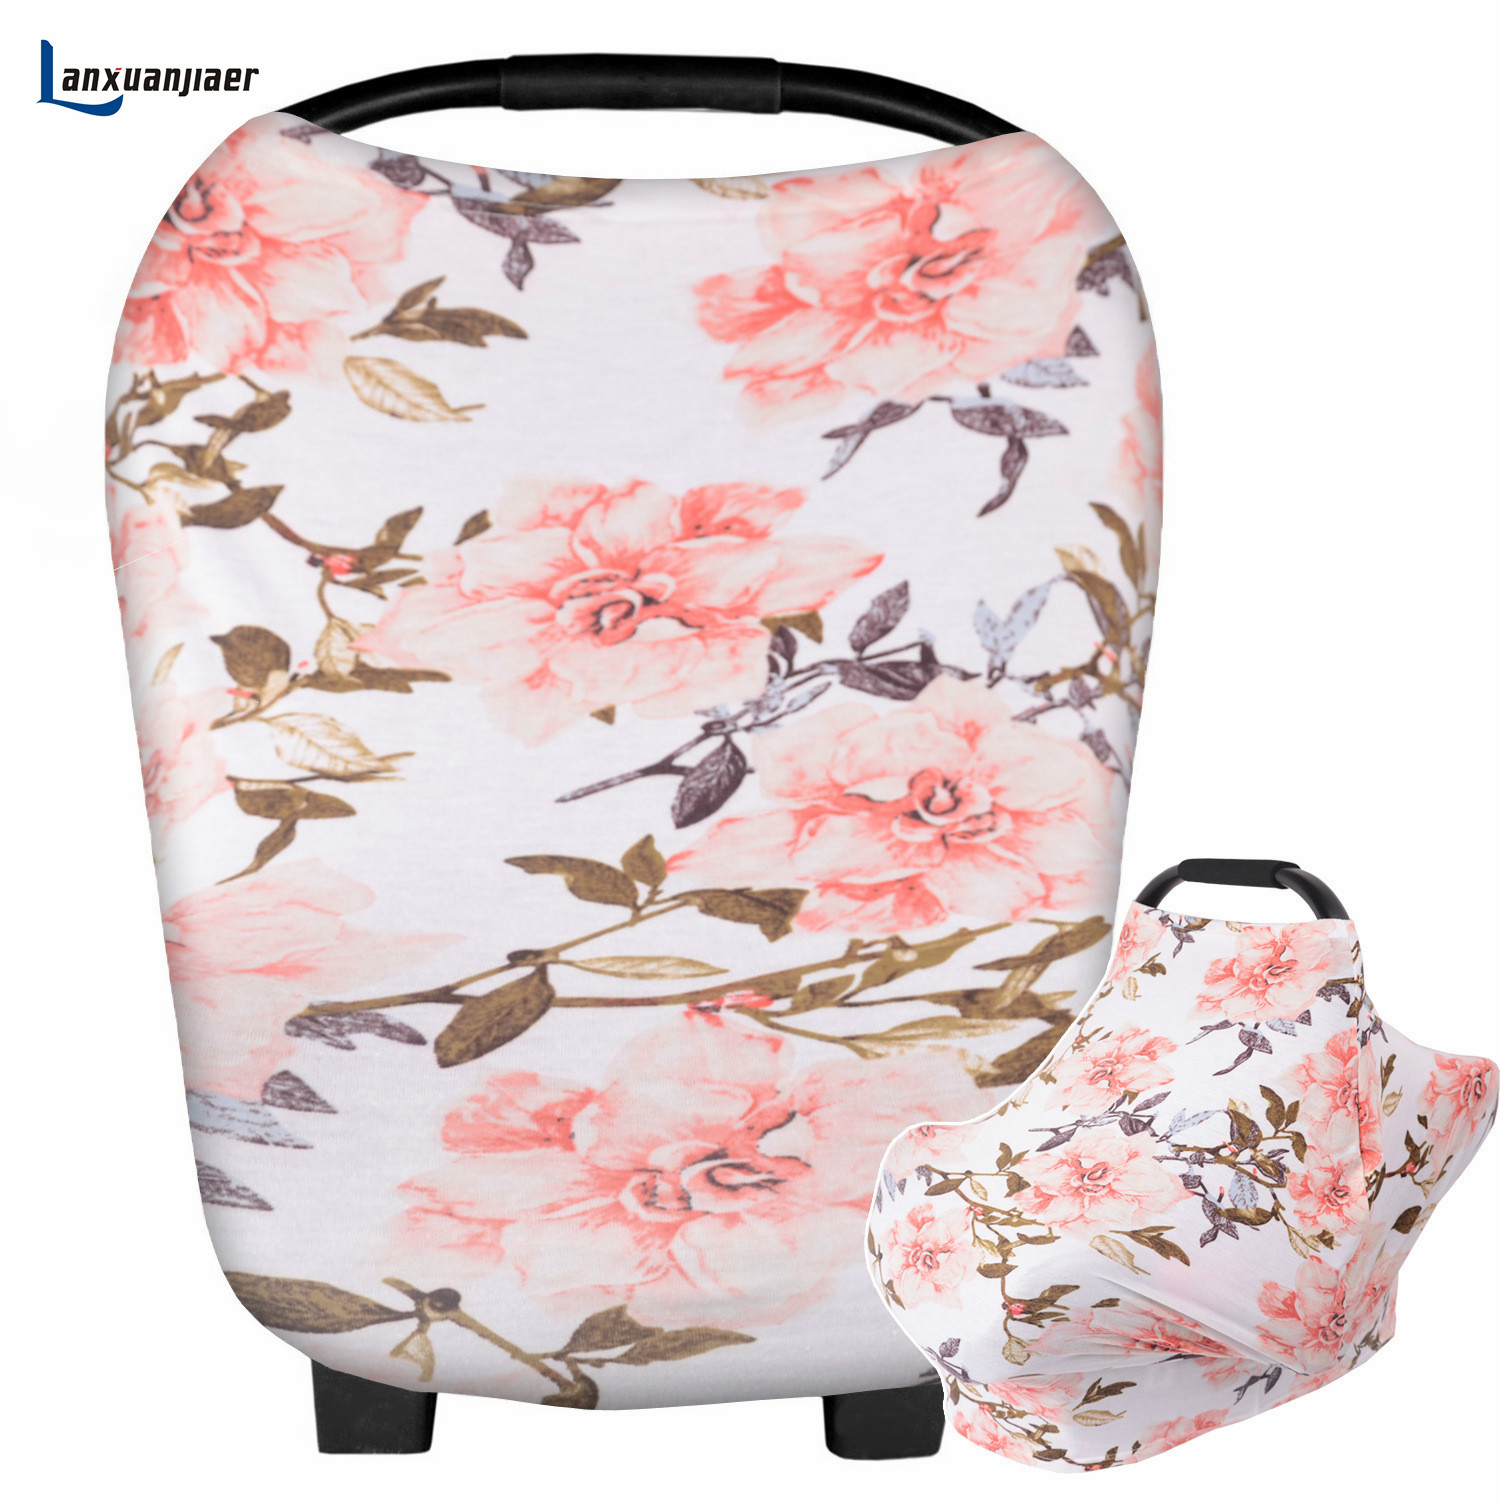 Baby Nursing Cover For Boys & Girls Breathable & Stretchy Baby Car Seat Canopy Cover Ideal For Public Breastfeeding& Stroller